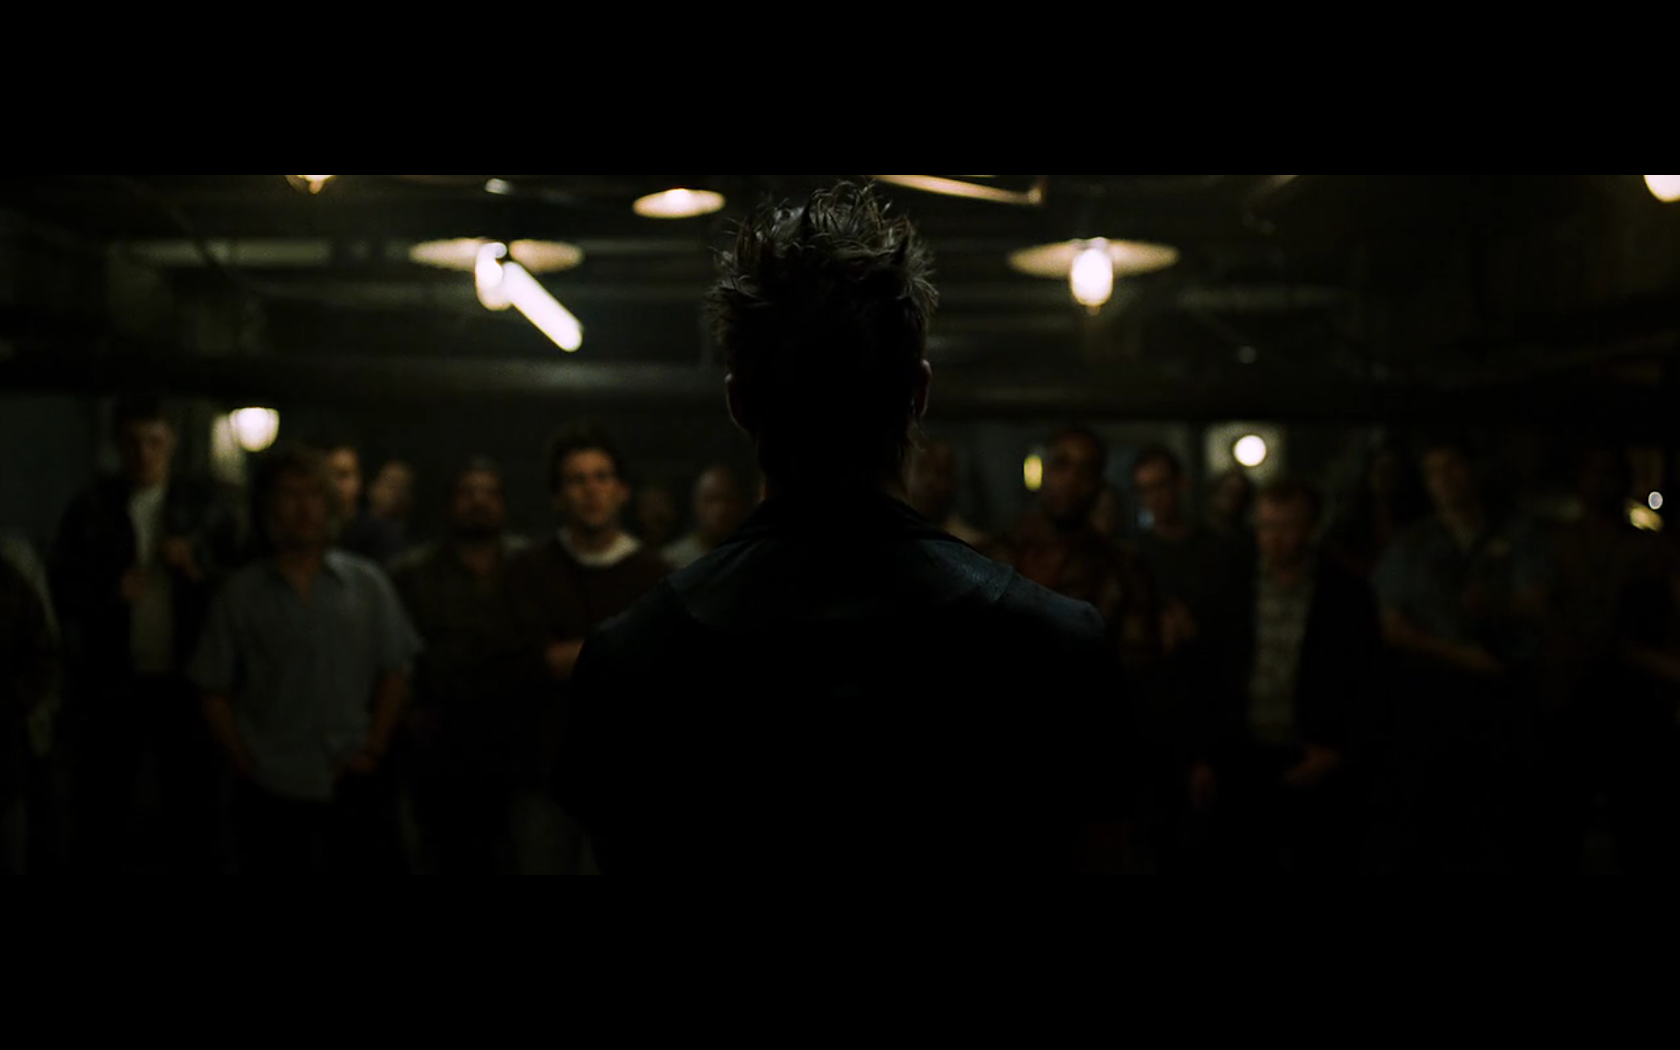 Fight Club - image 2 - student project